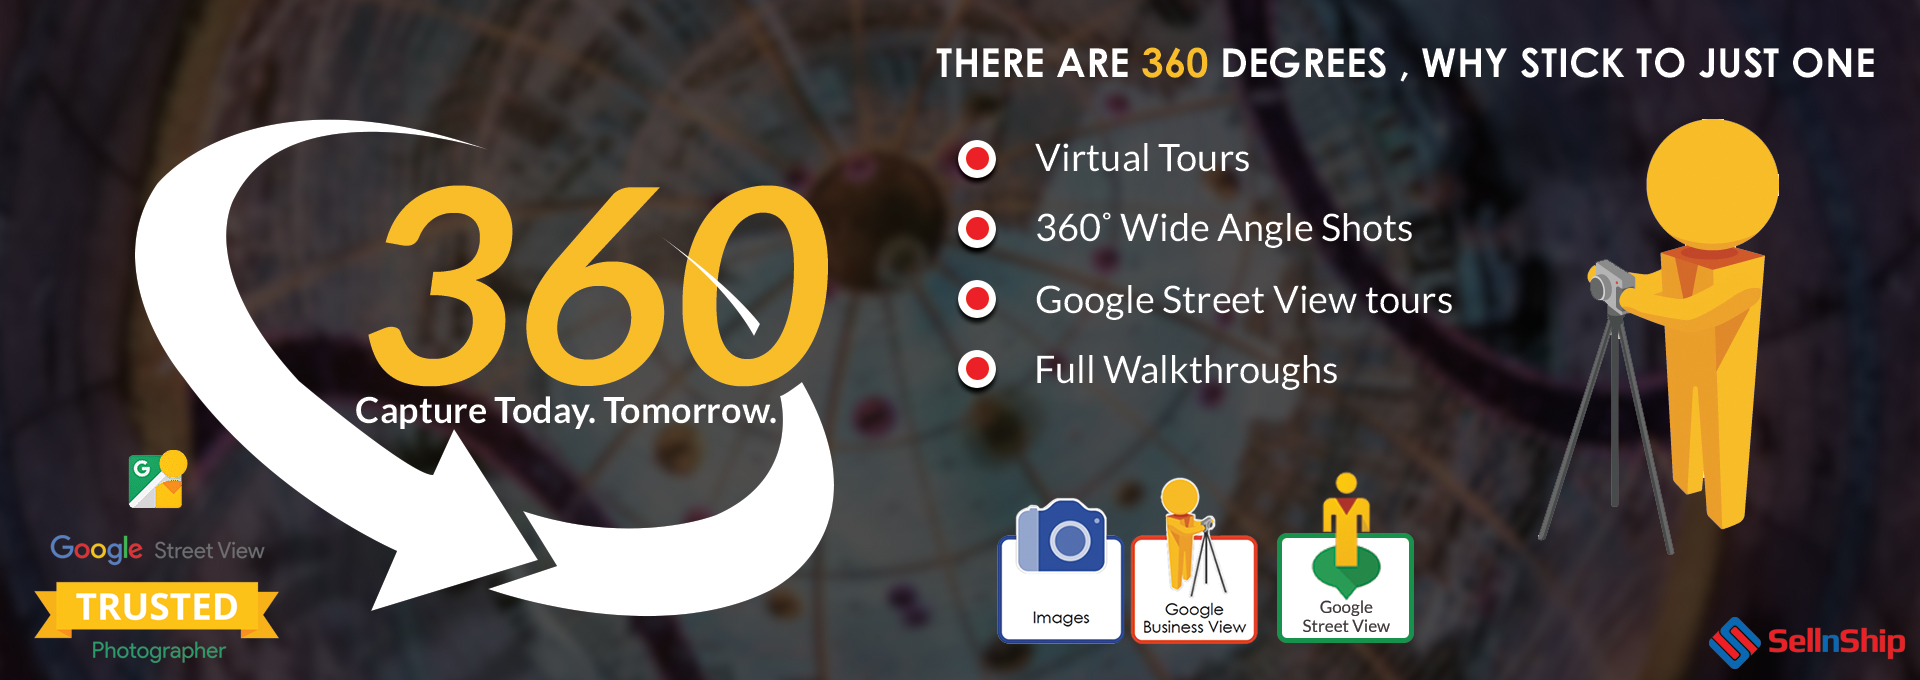 360 virtual tours Google street view Google Business view providers